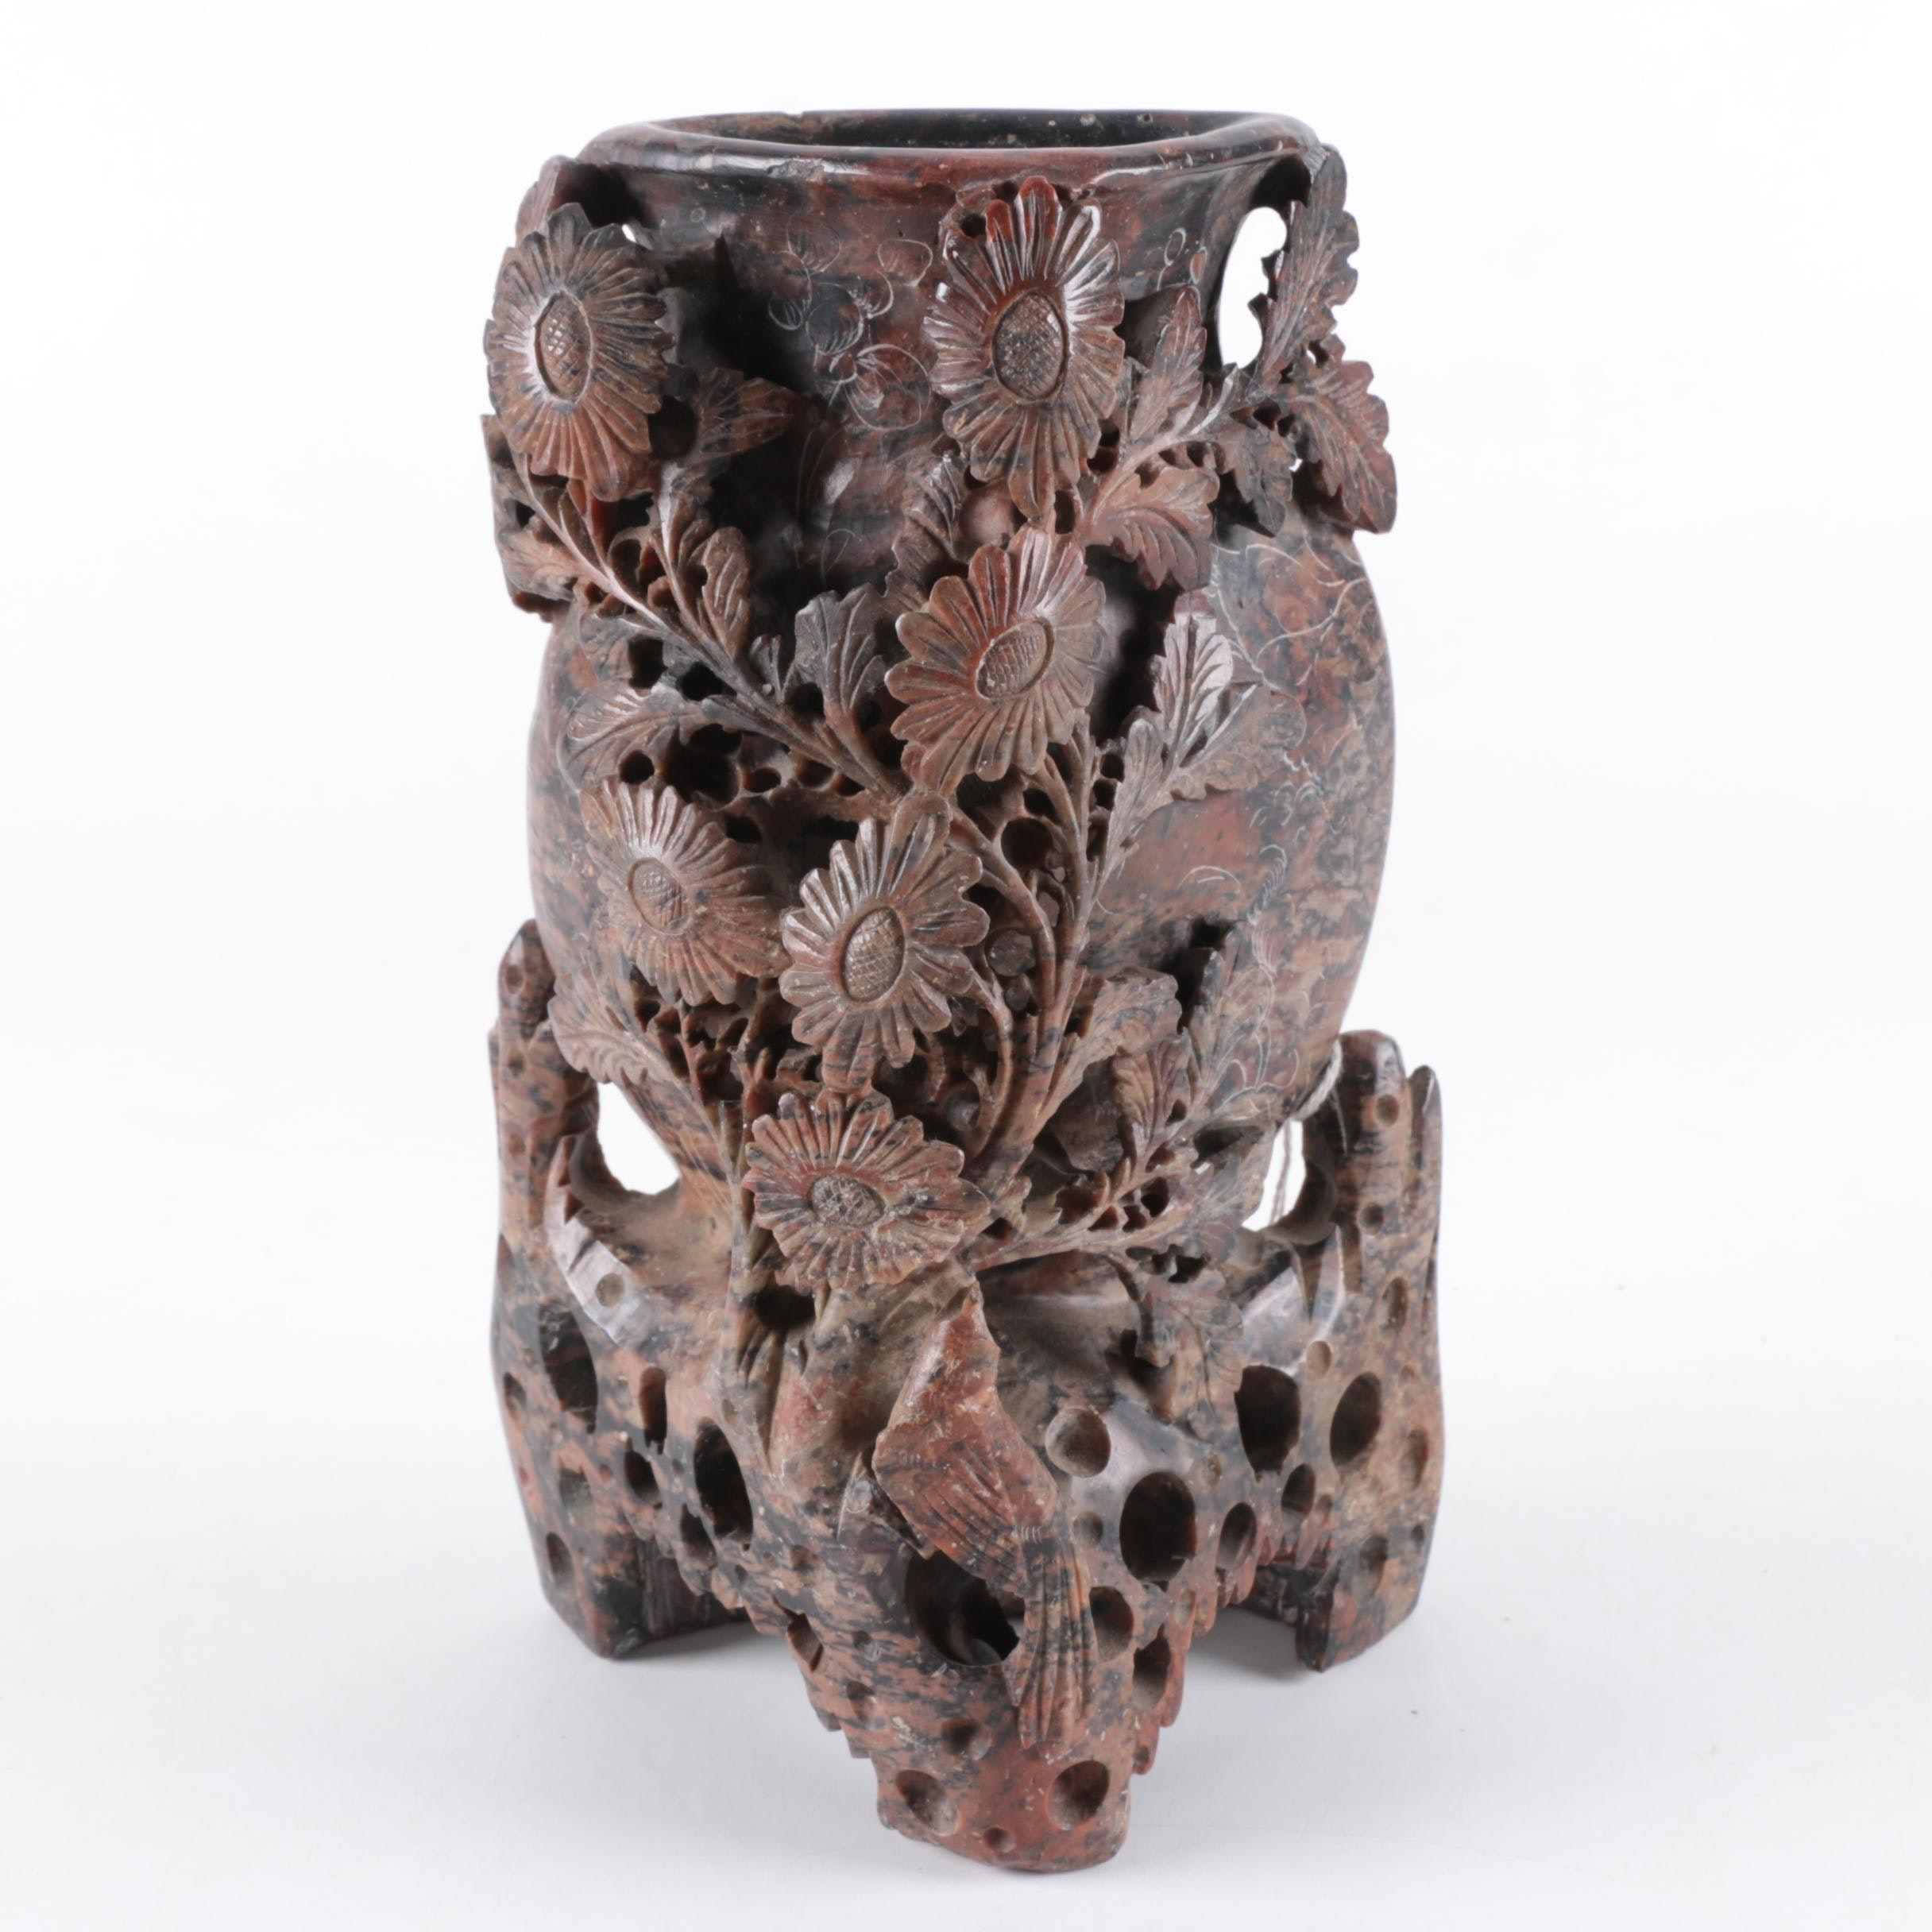 Chinese Floral Motif High Relief Carved Soapstone Vase